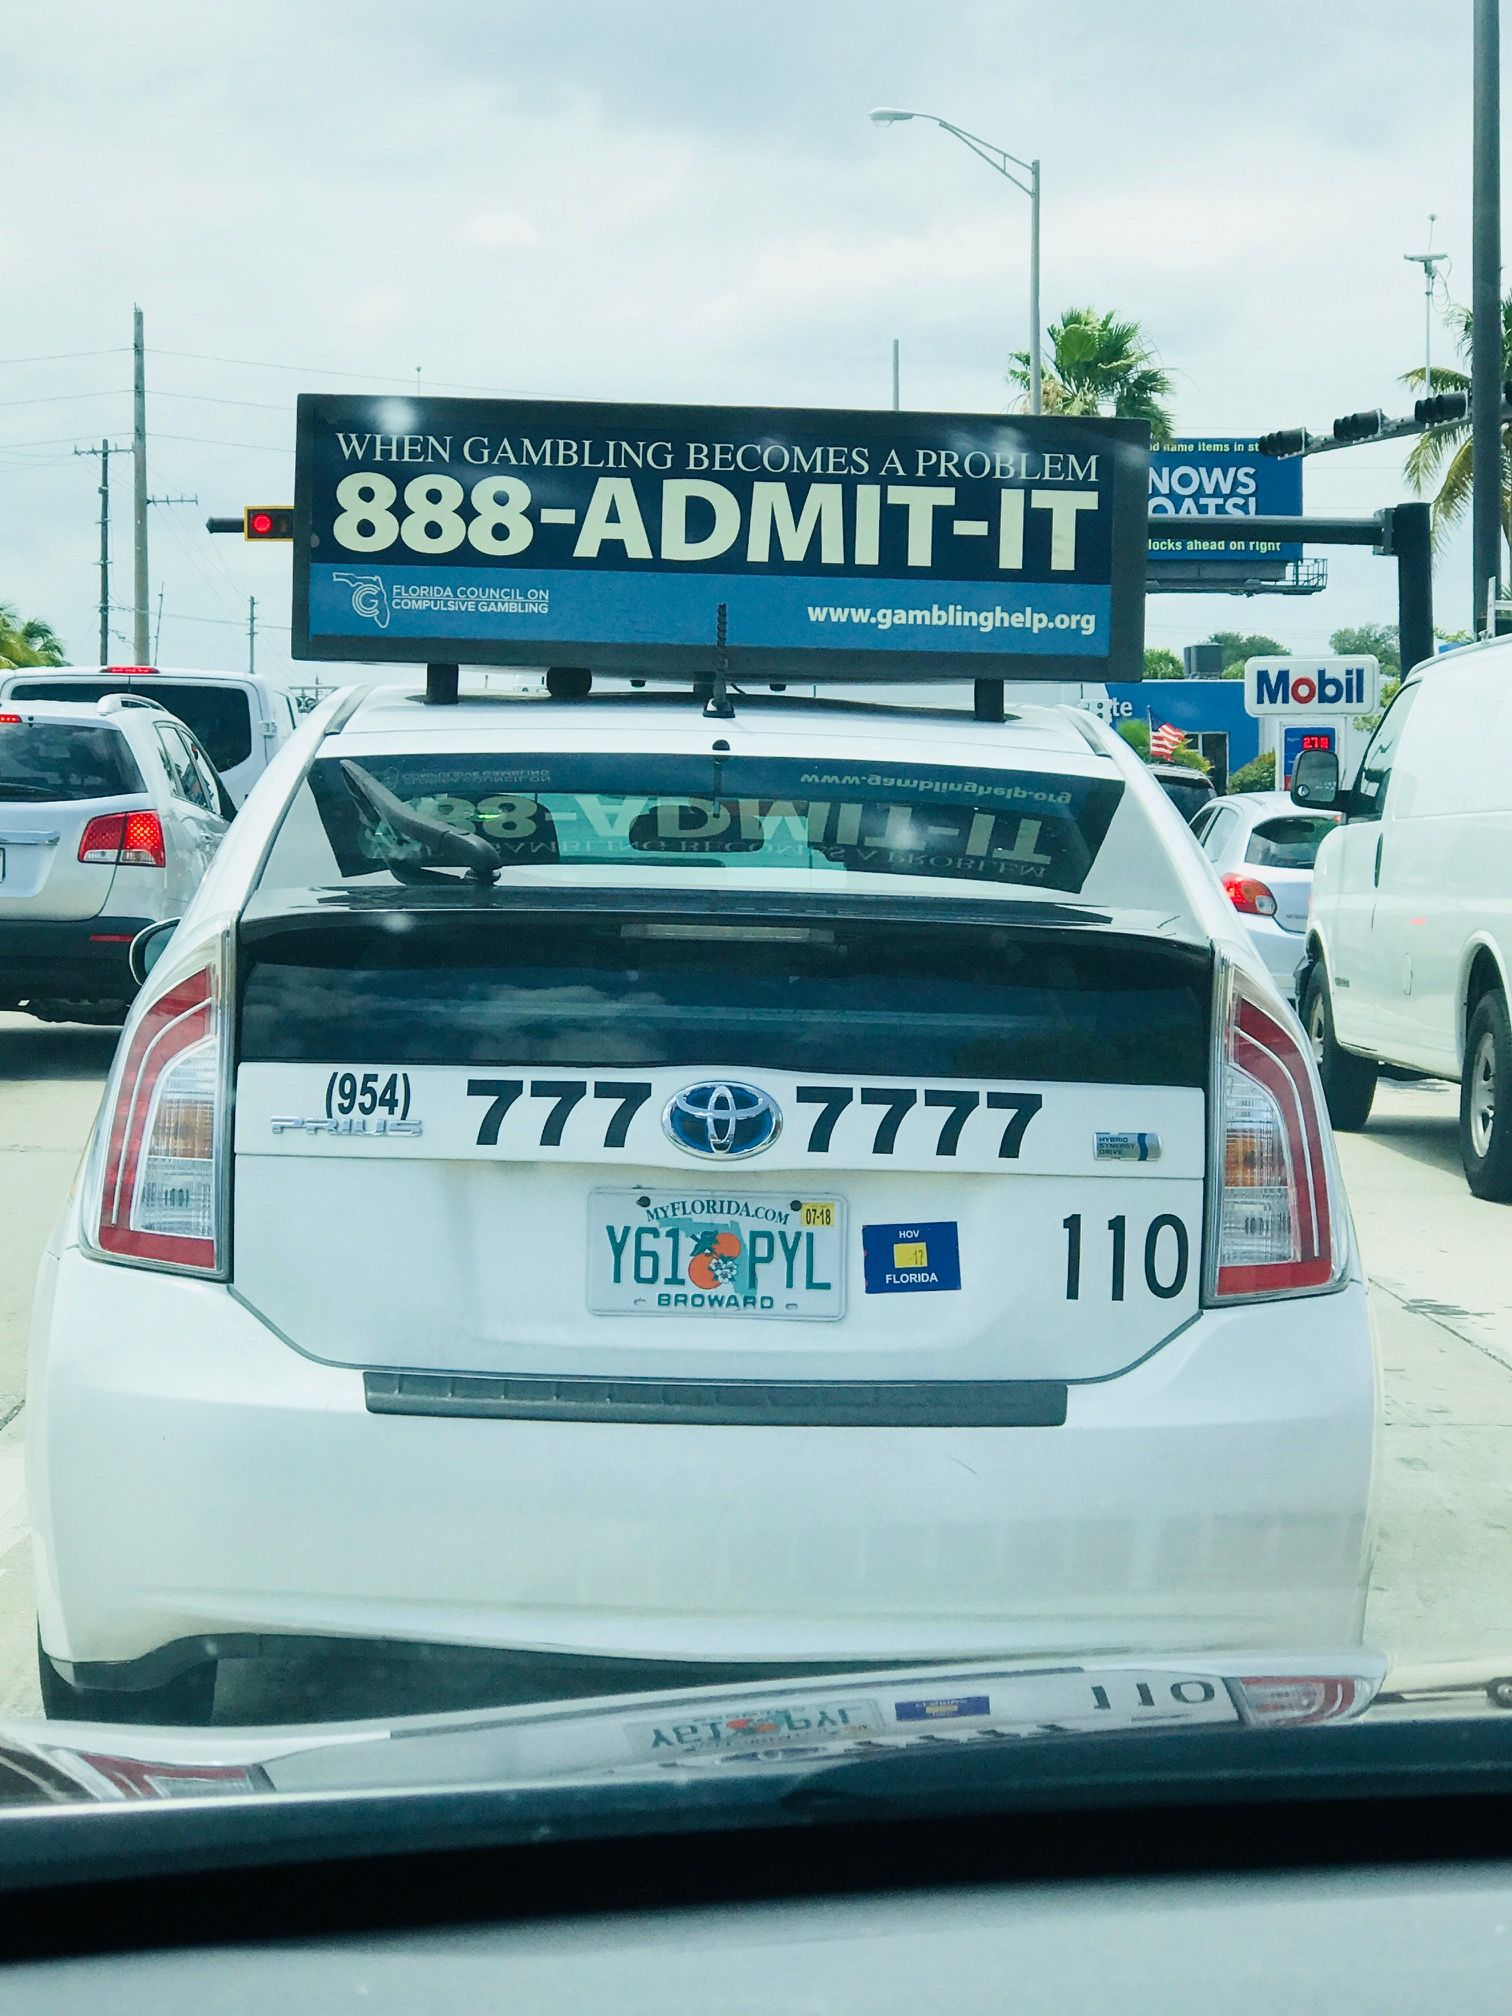 We Spotted Our Helpline On A Taxi Down In Southflorida Call 888 Admit